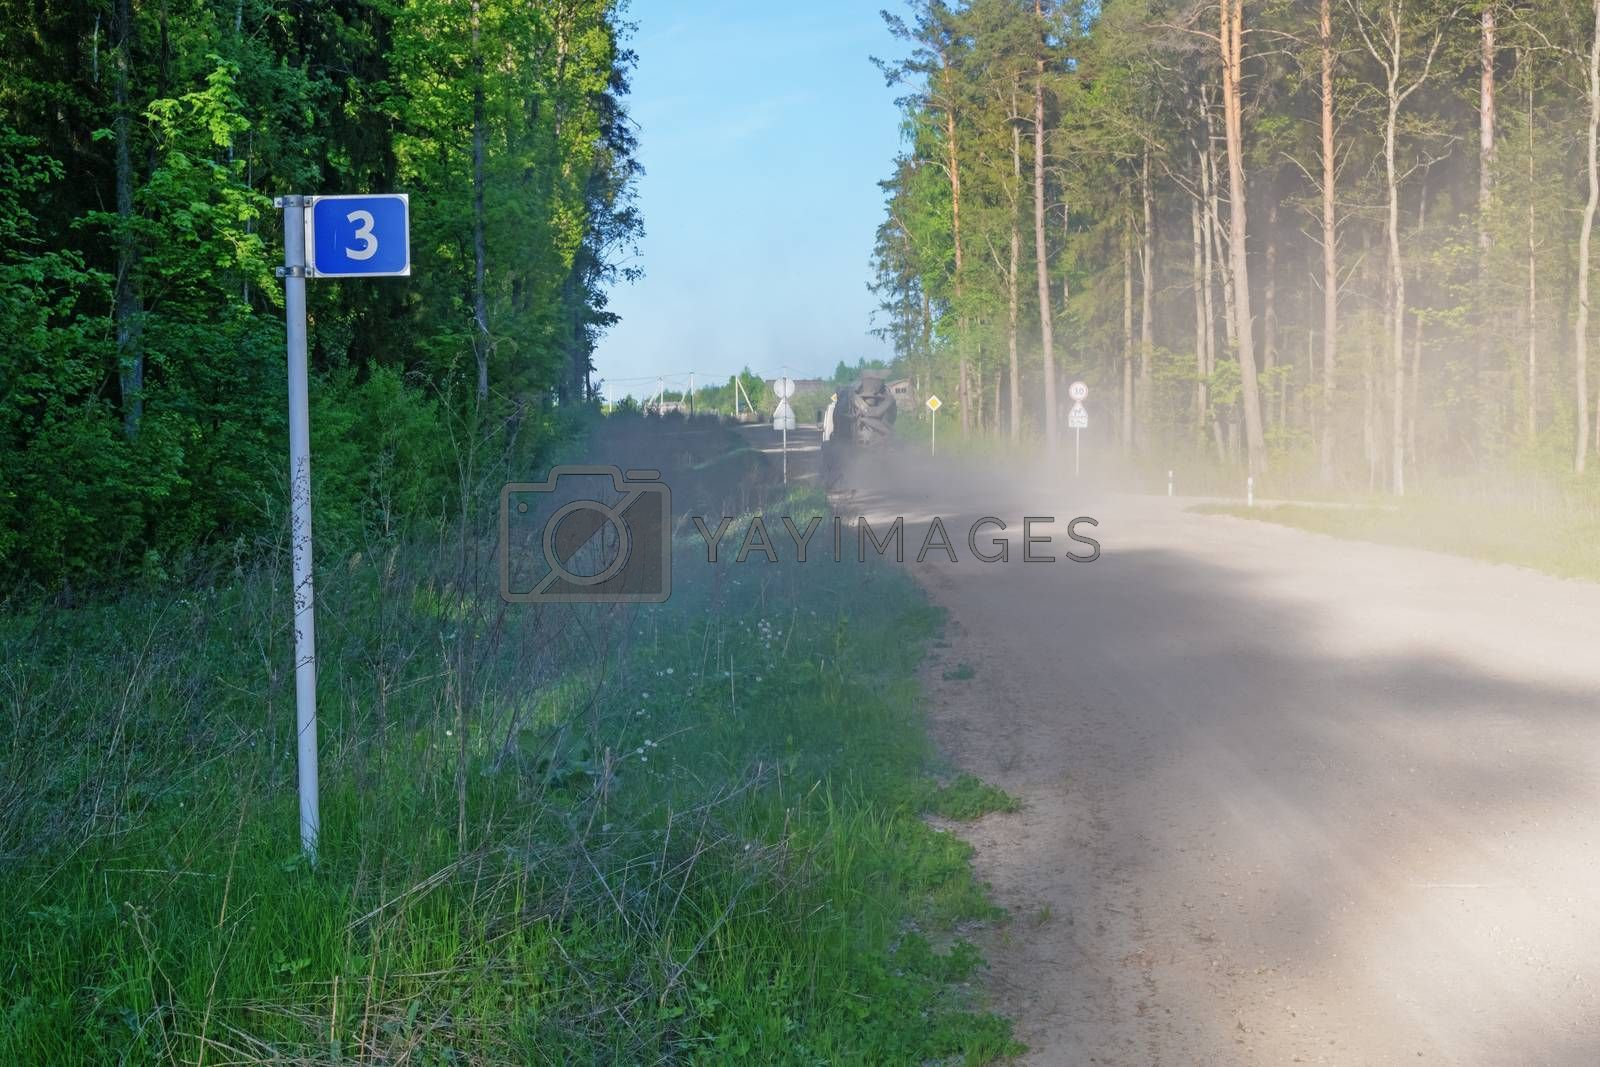 Left photo road sign - 3 kilometers. Over the road a cloud of dust from the traveling vehicle.